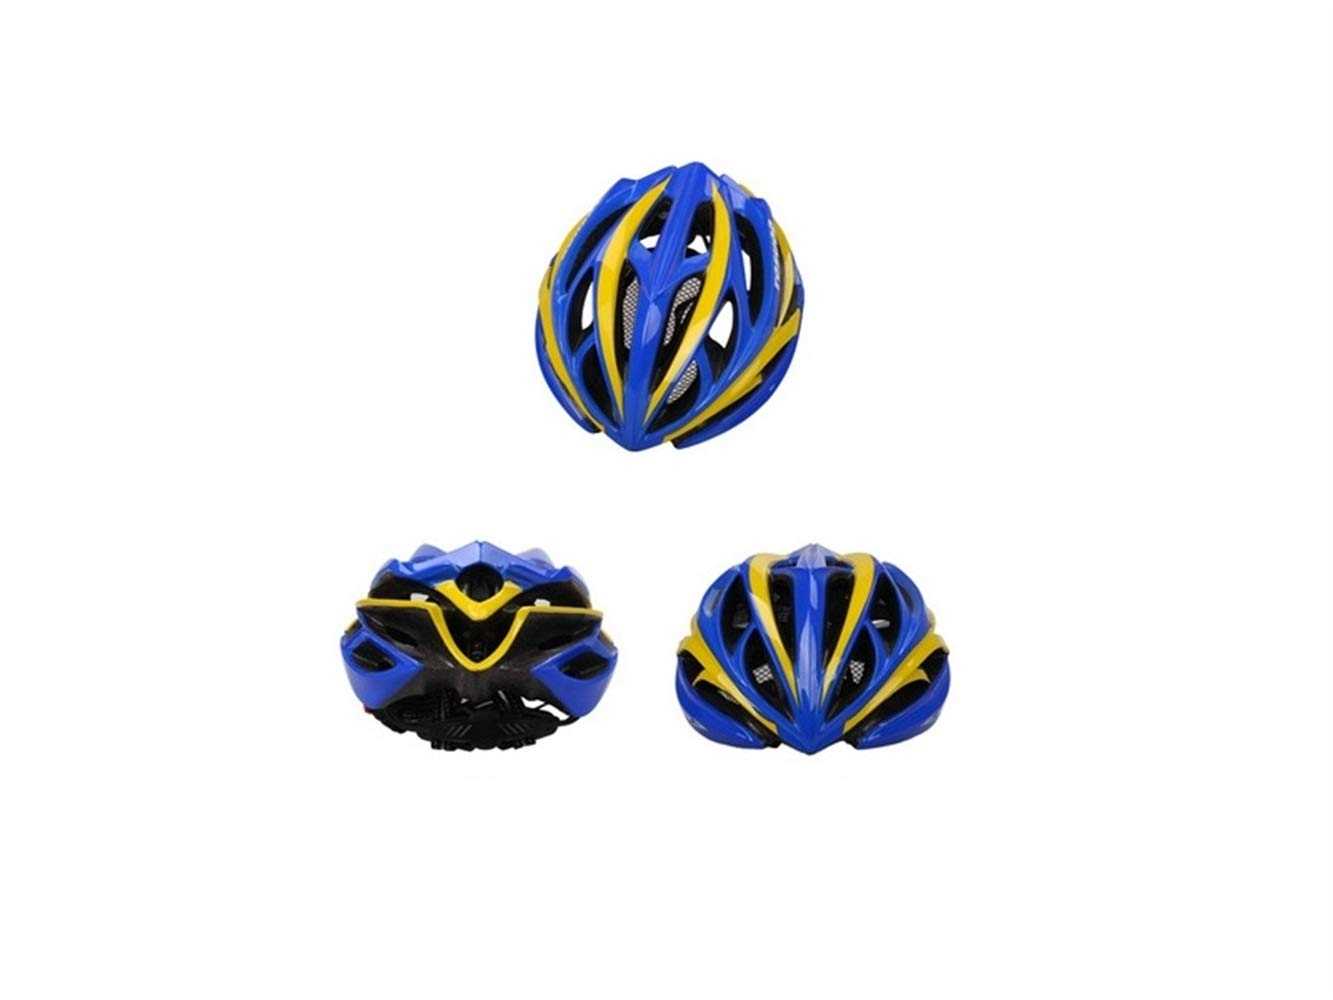 Multi-Sport Helmet Men Women Ventilation Bike Helmet Porous One-Piece Bicycle Helmet(Blue+Yellow) Rollerblading Protective Gear Blue Bridge